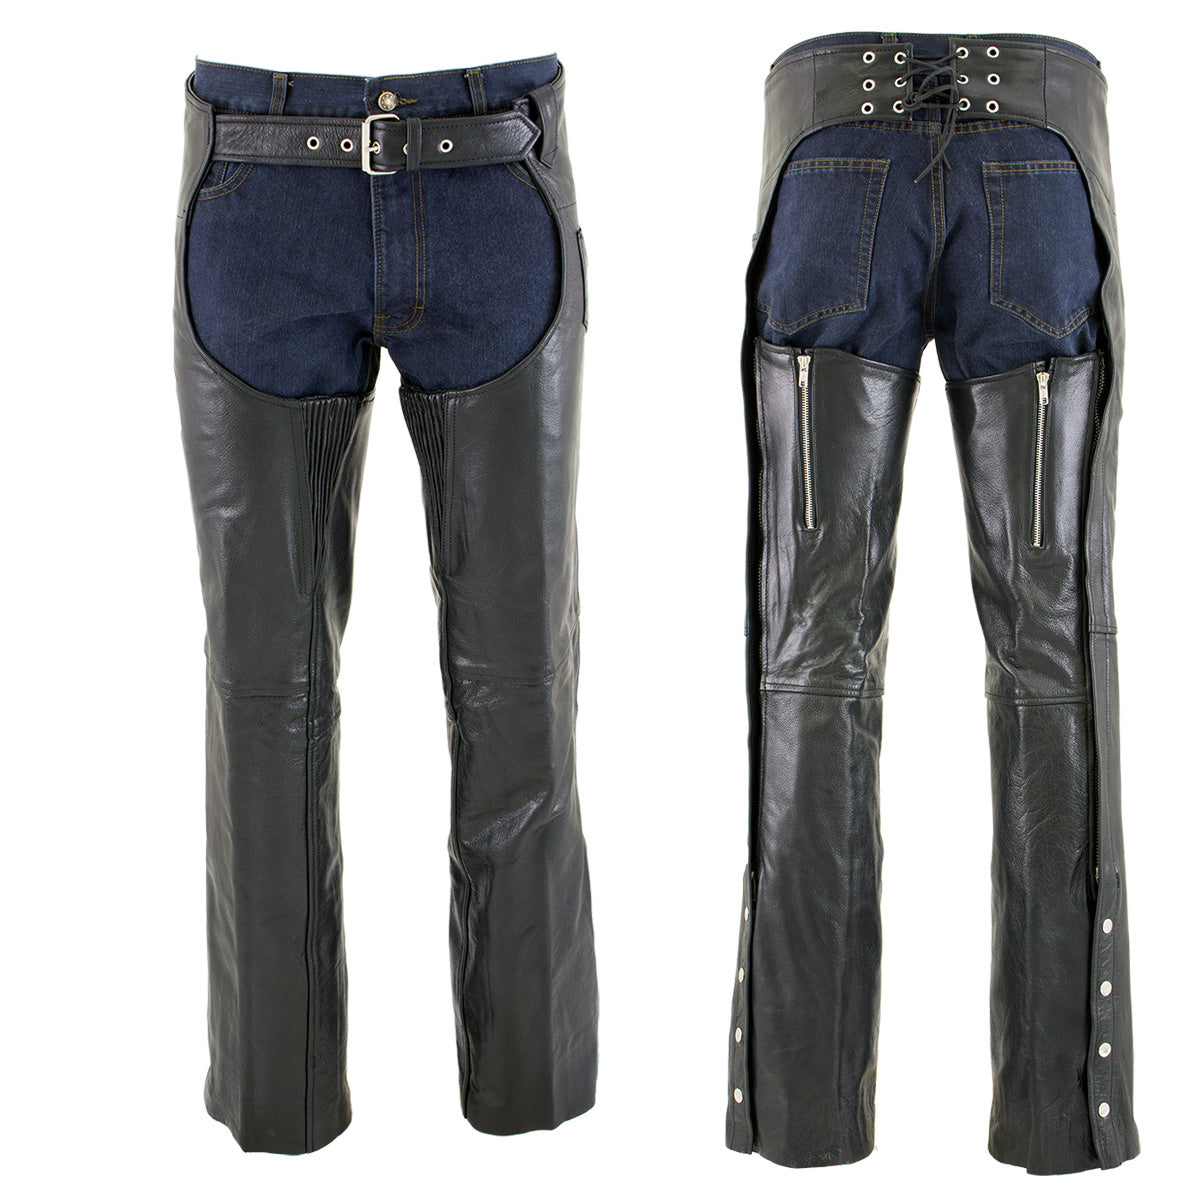 Xelement 7554 Men's Black 'Advanced Dual Comfort' Leather Chaps